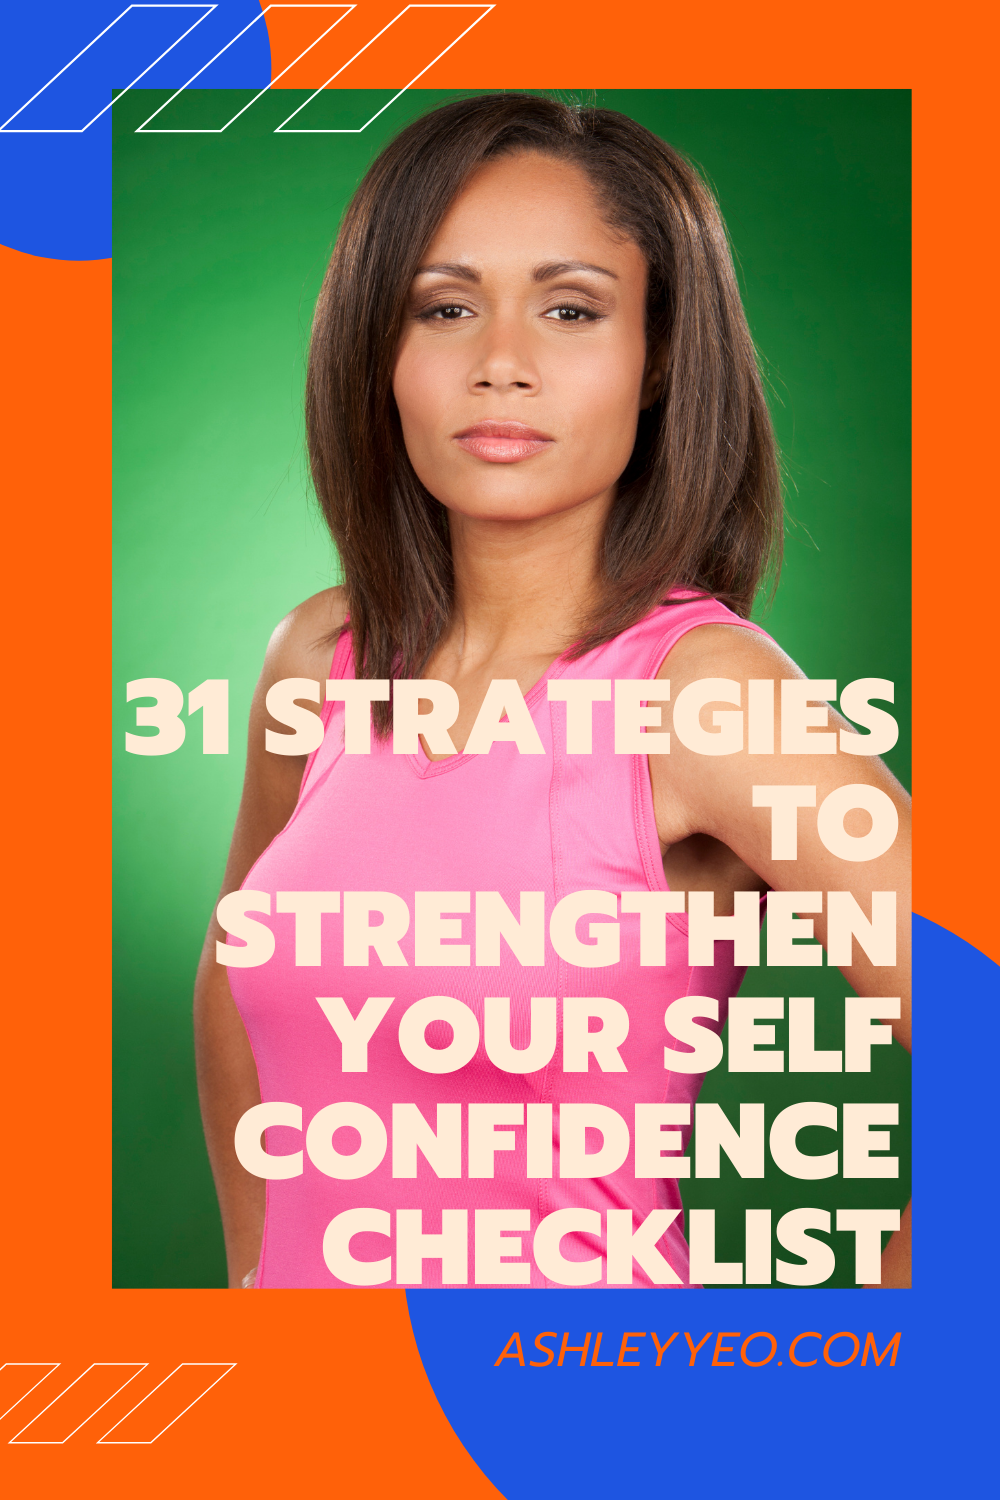 31 Strategies To Strengthen Your Self Confidence